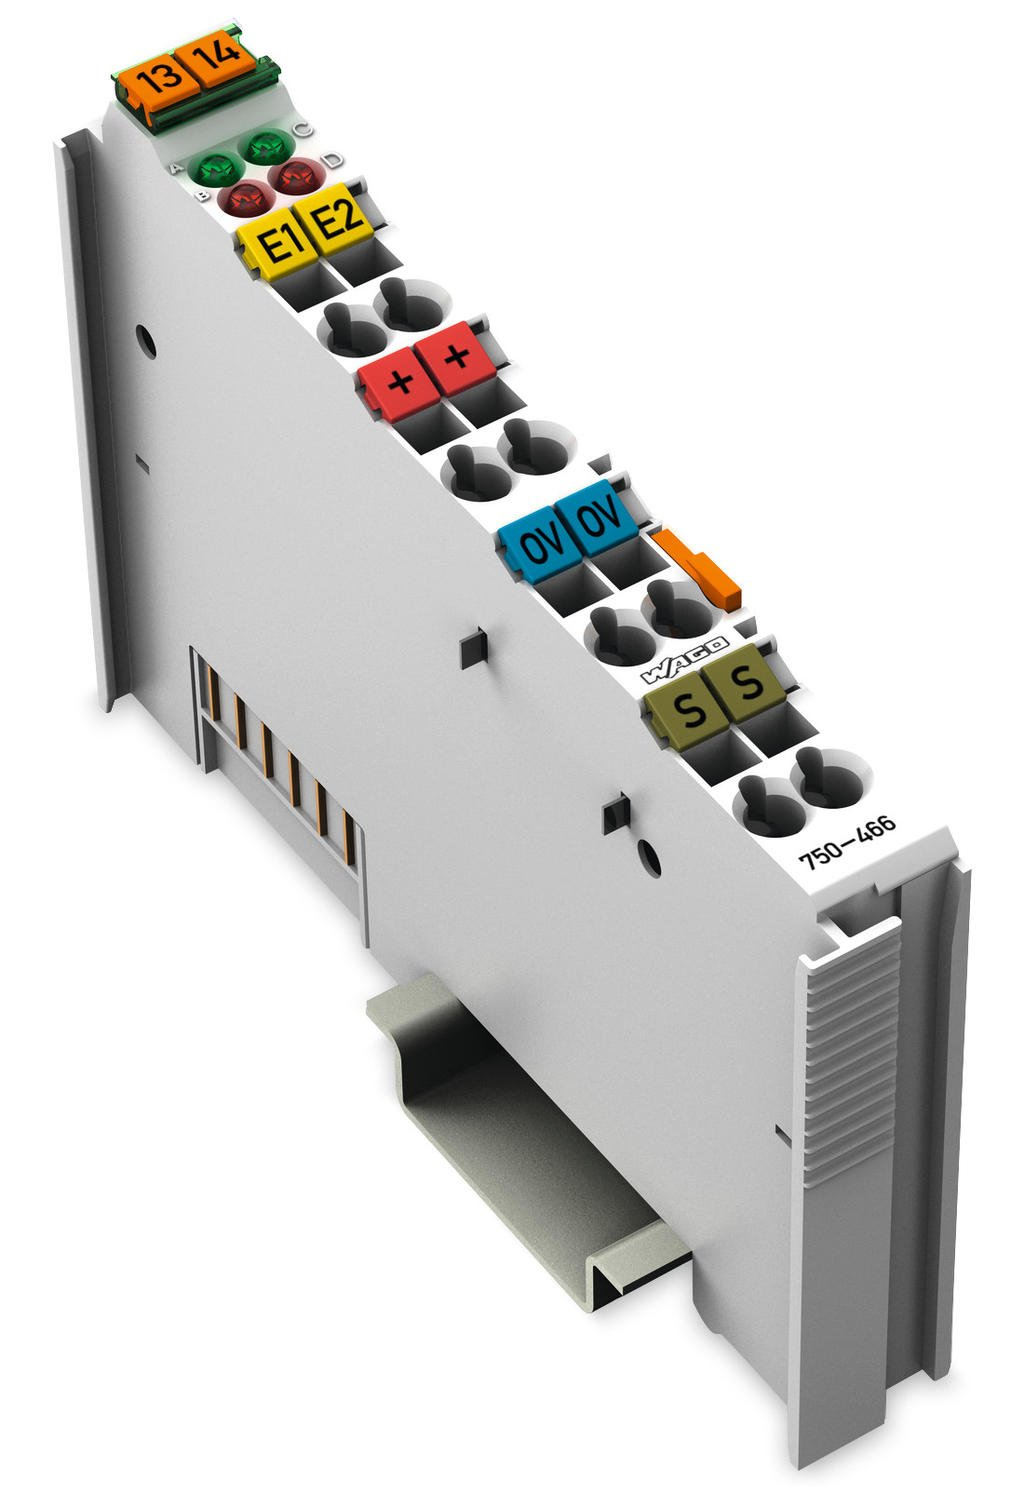 Wago 2 Channel Analog Input 750 466 Electrical Wiring Channels To 4 Conductor Connection Single Ended